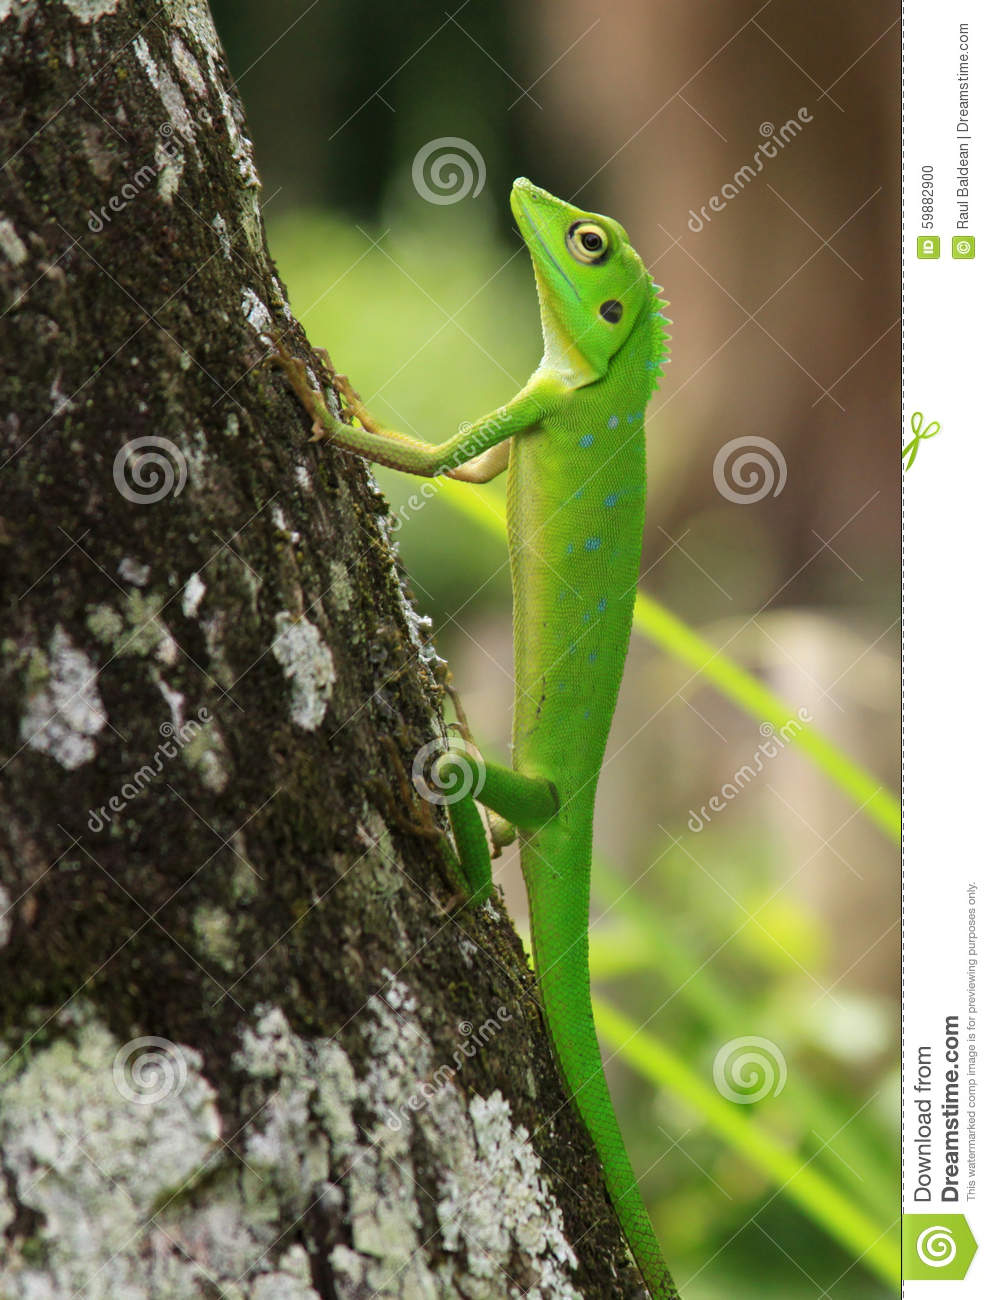 Crested green lizard on tree trunk